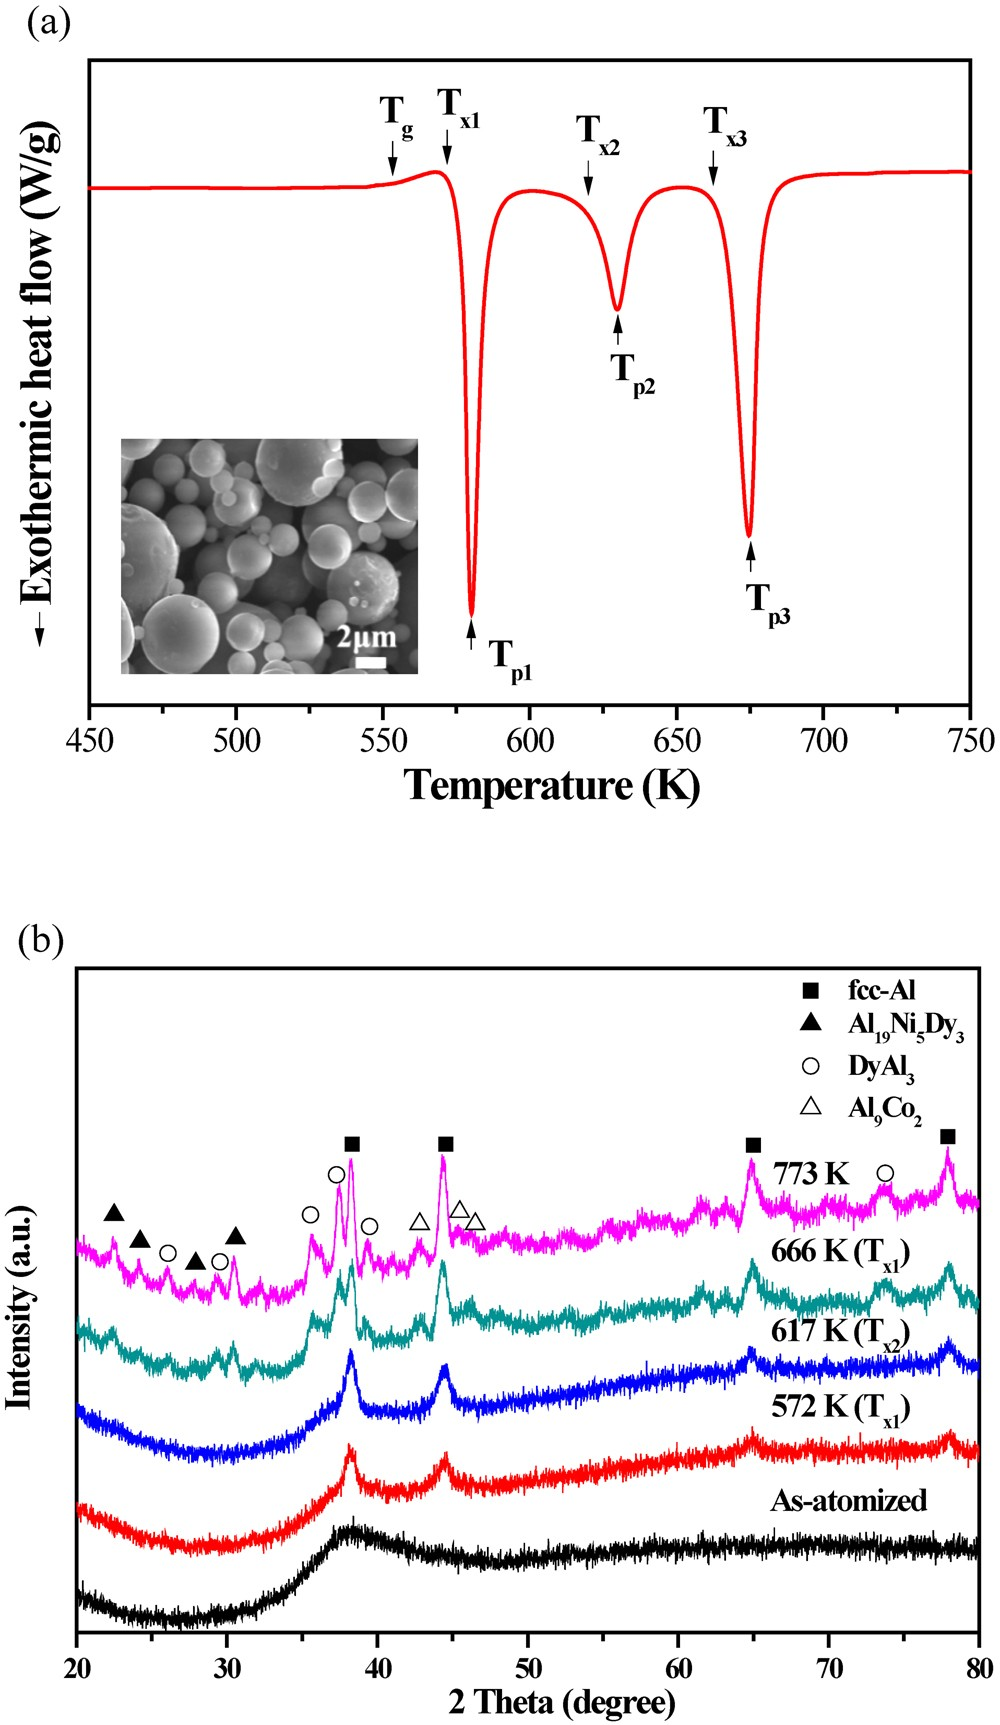 High Strength Nanostructured Al Based Alloys Through Optimized Figure 9 Traction Generator Field Wiring Diagram Processing Of Rapidly Quenched Amorphous Precursors Scientific Reports